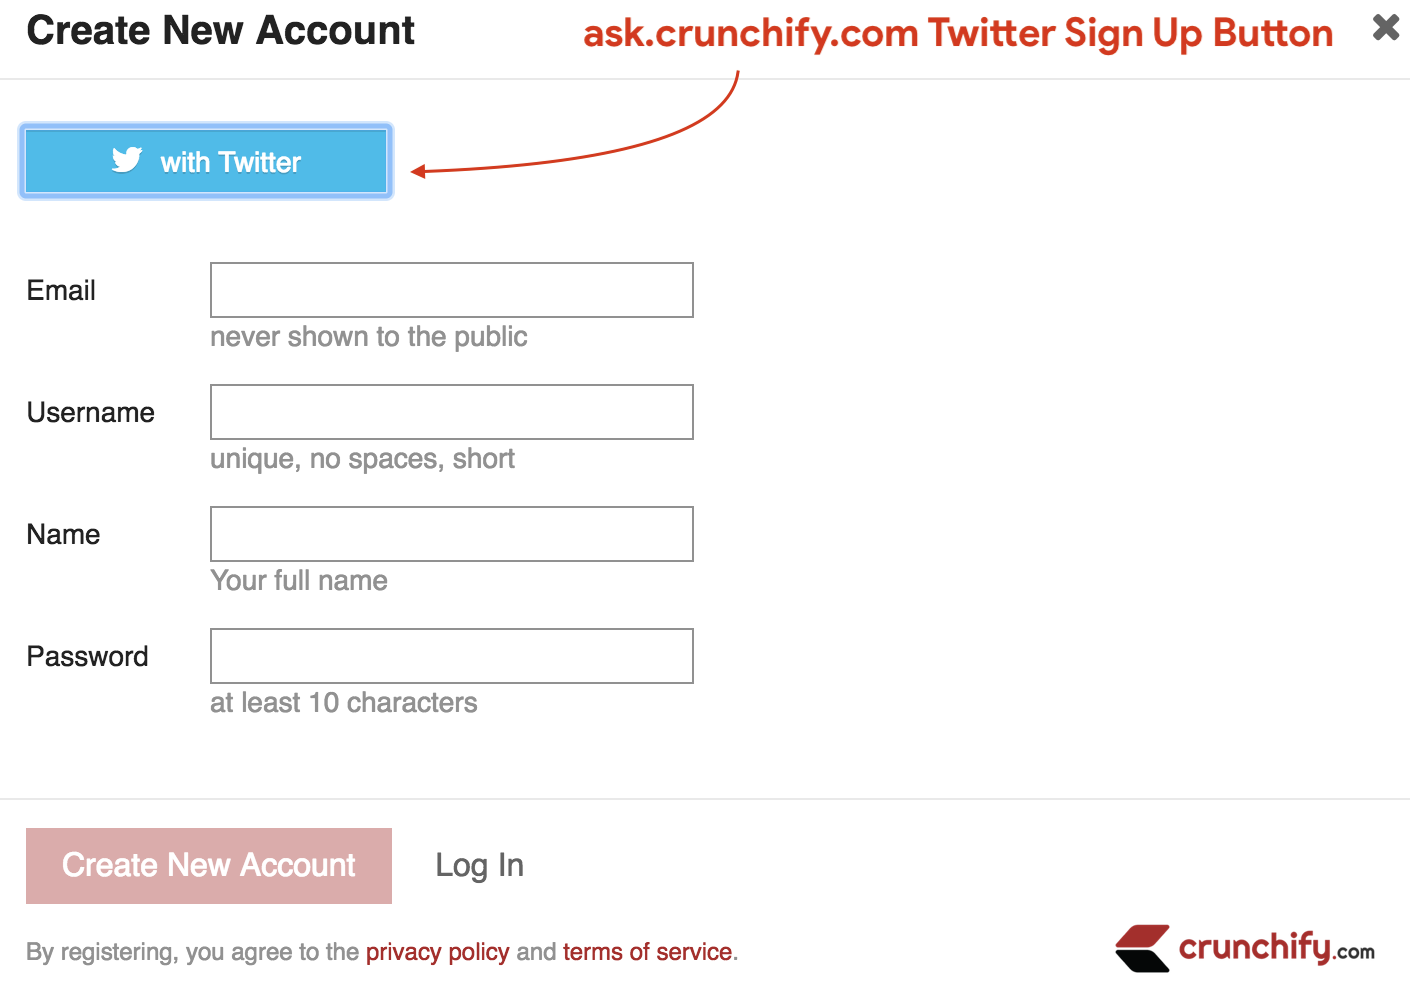 ask.crunchify.com Twitter Sign Up Button